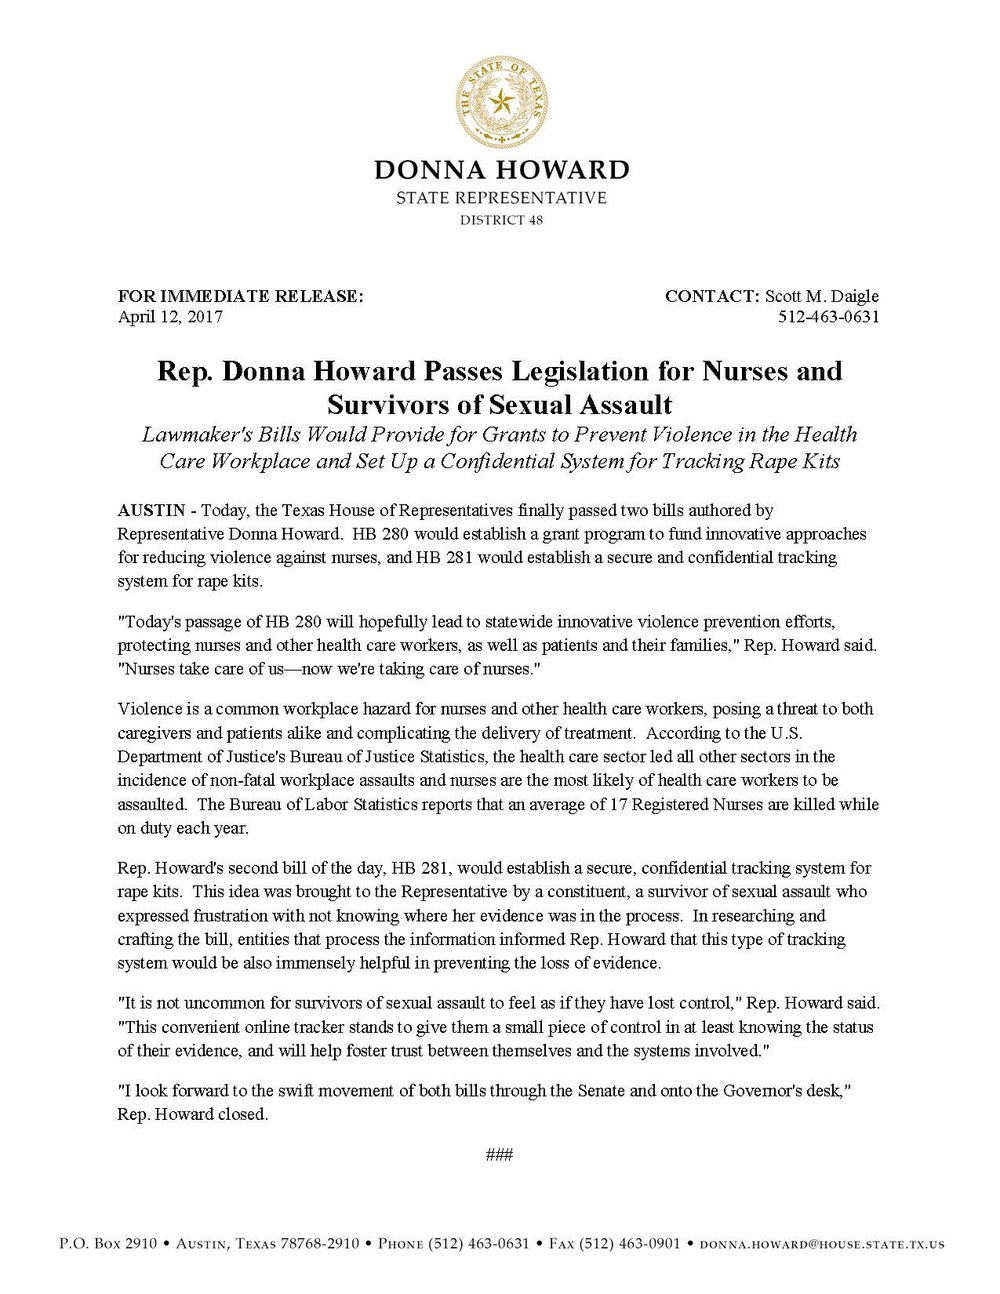 Rep. Howard Passes Legislation for Nurses and Survivors of Sexual Assault